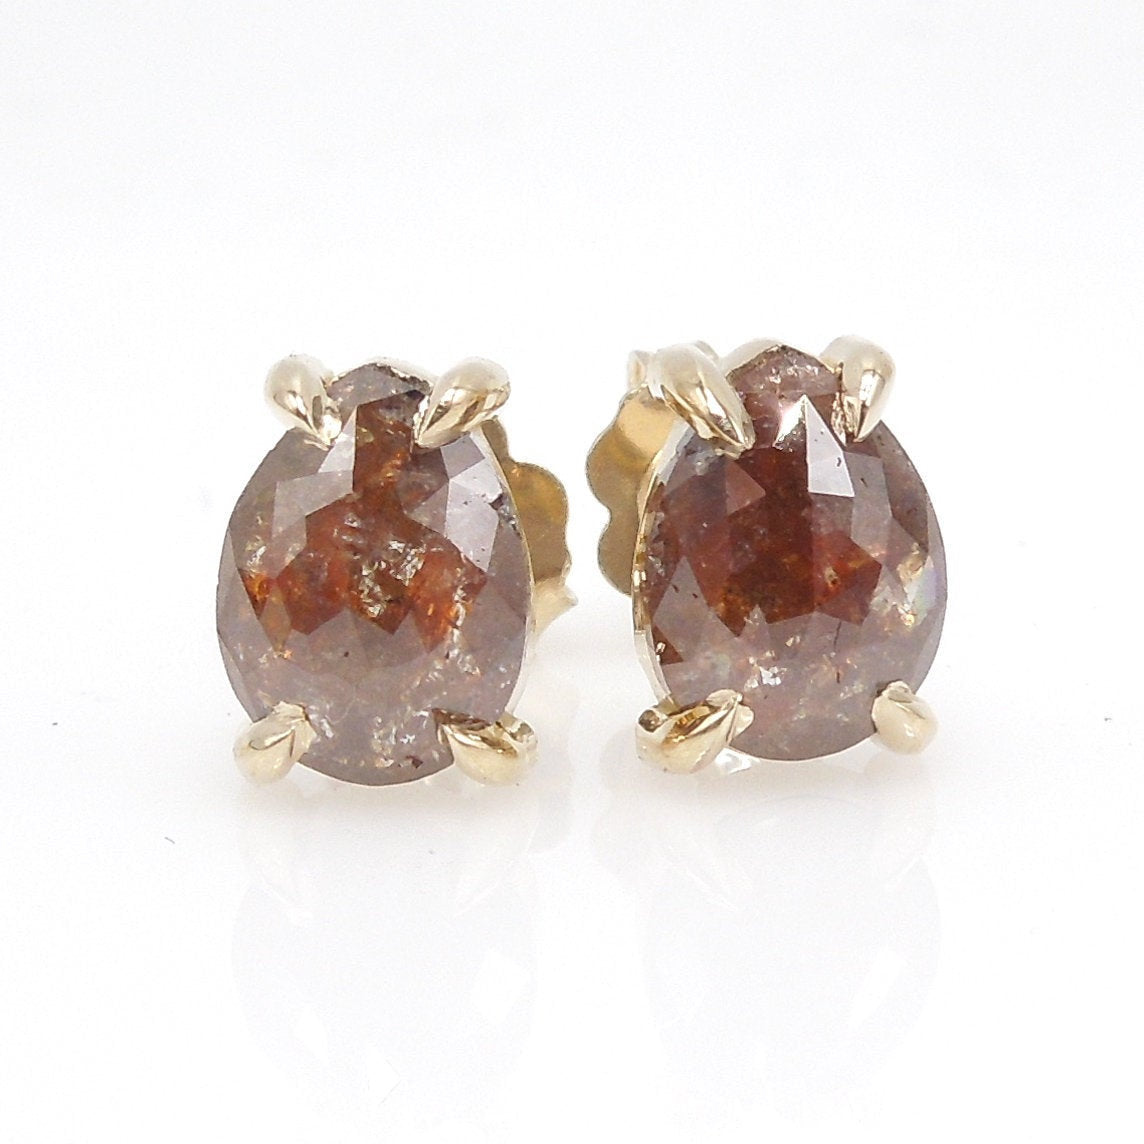 Brown Salt and Pepper Rose Cut Pear Shaped Diamond Stud Earrings in Yellow Gold